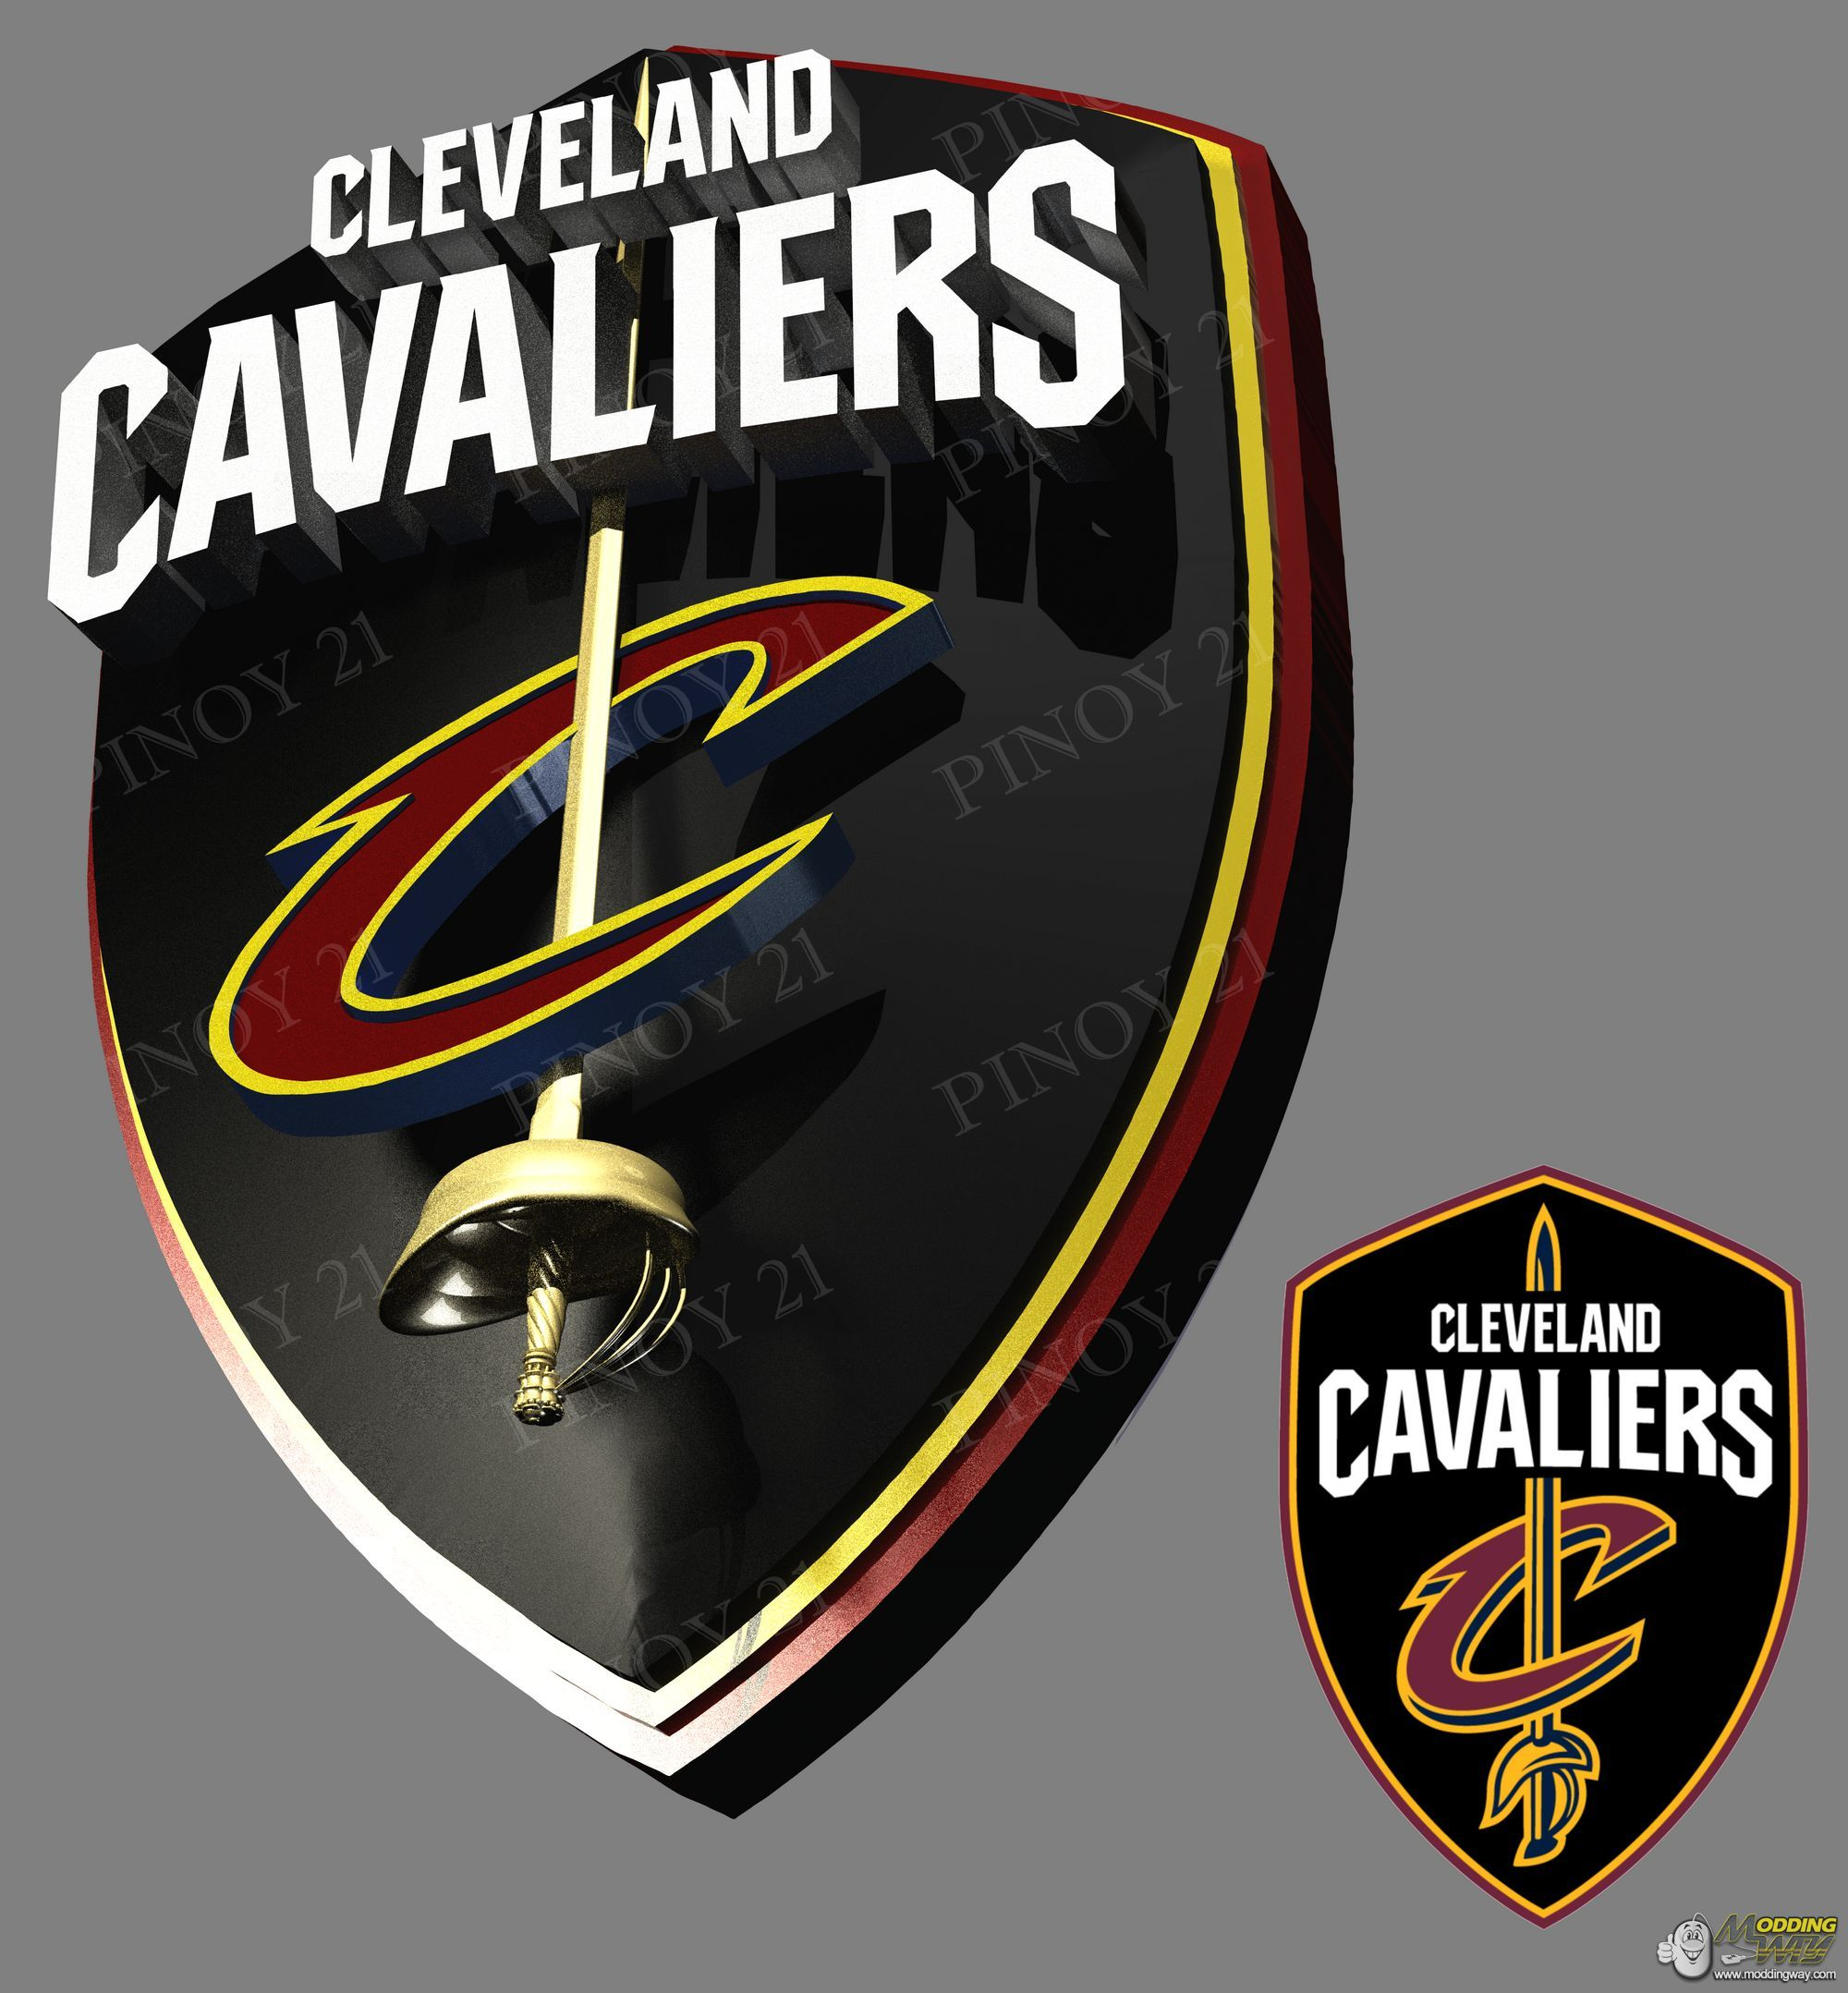 Cleveland Cavaliers new logo.